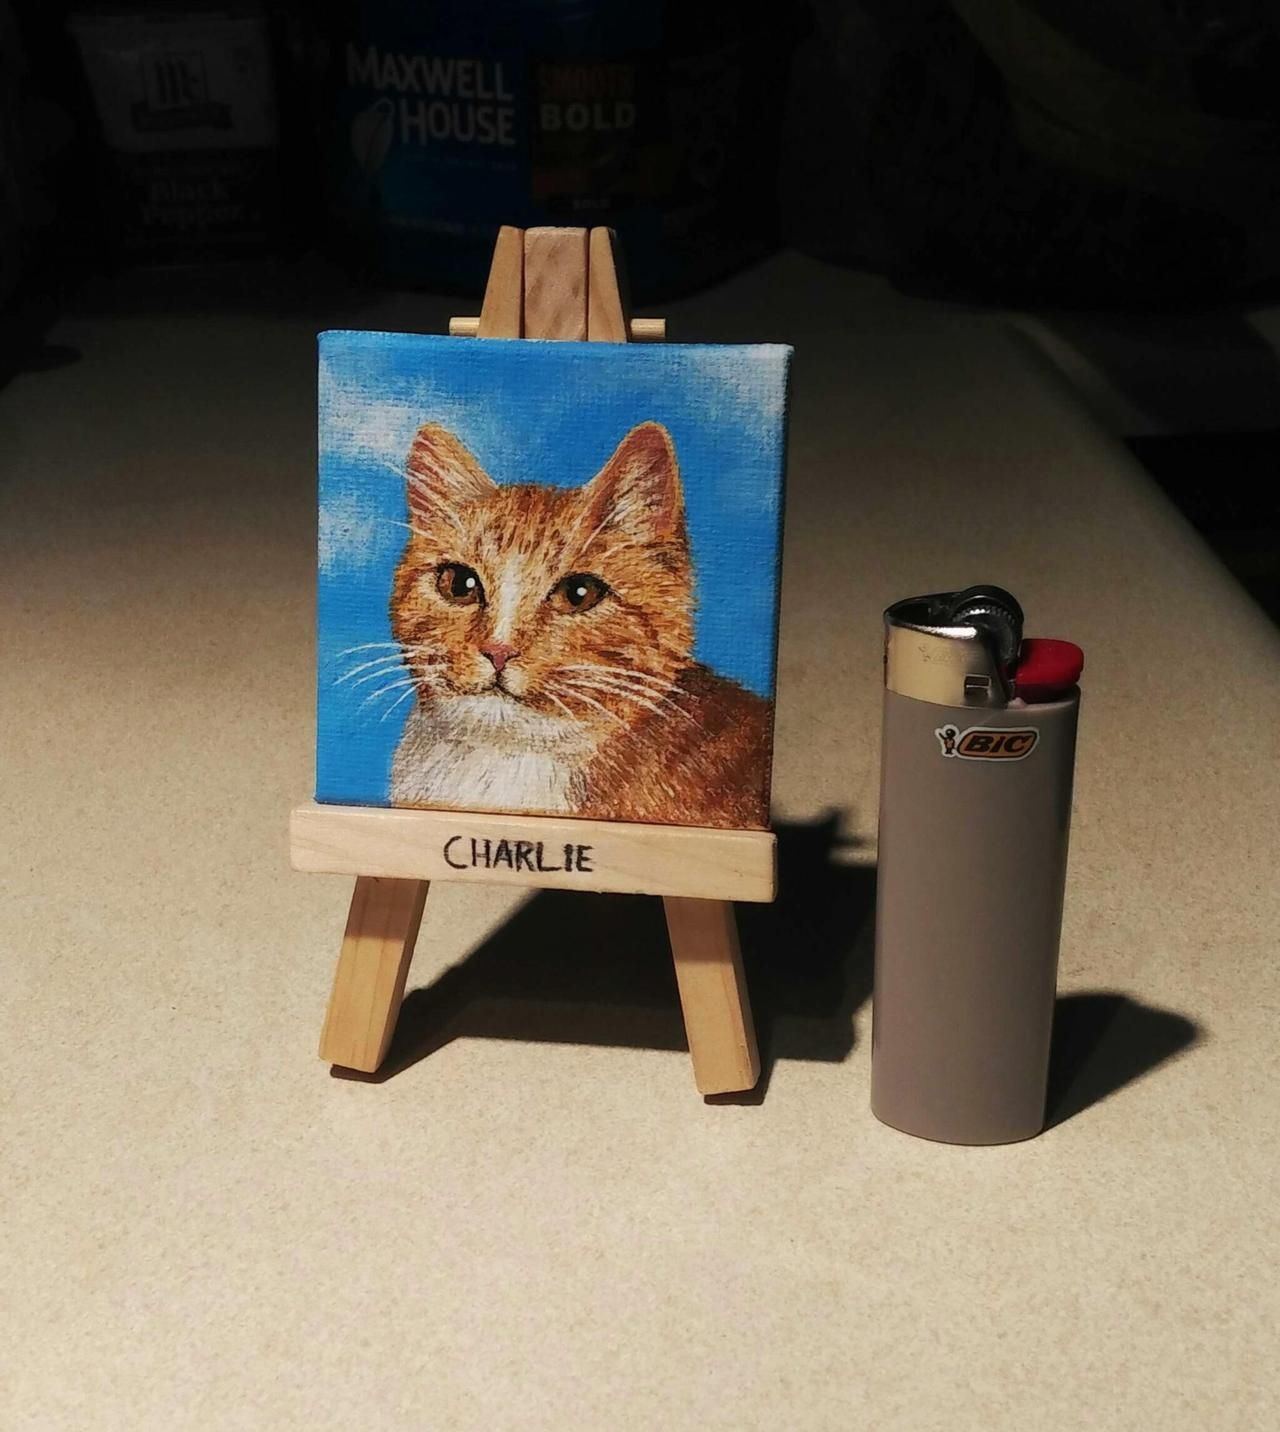 I painted a small Charlie today! by town_tart cats kitten catsonweb cute adorable funny sleepy animals nature kitty cutie ca